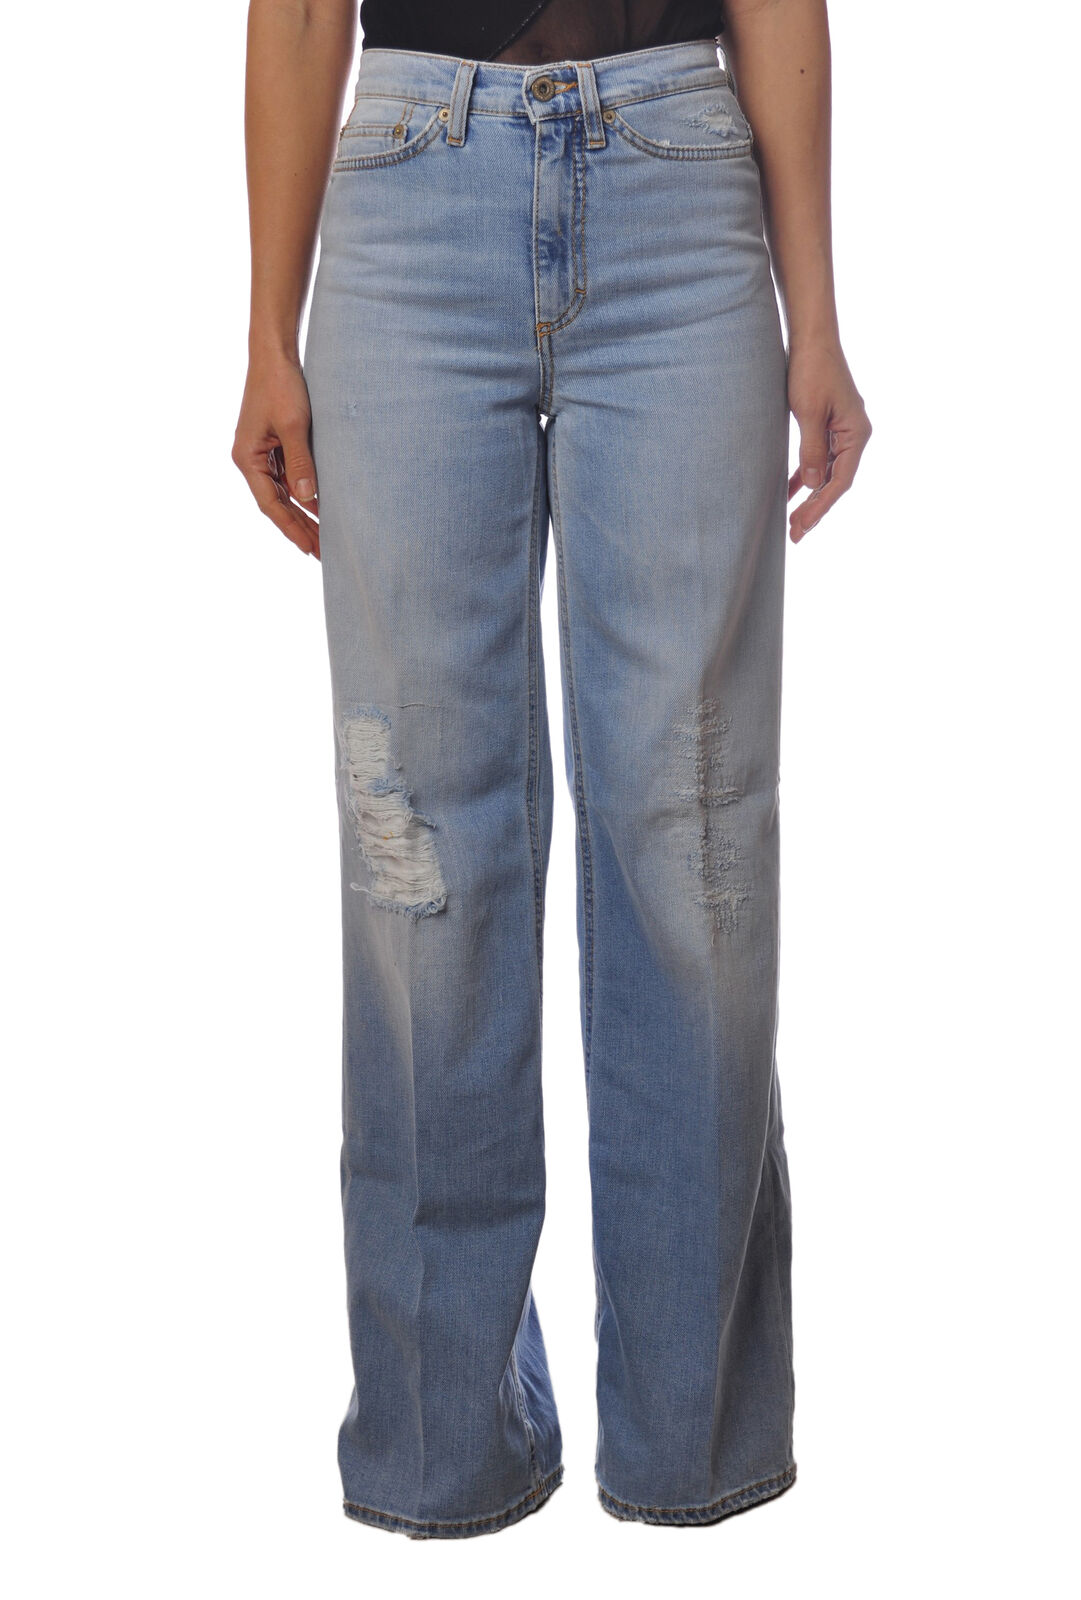 Dondup - Jeans-Pants - Woman - Denim - 4984726E183821